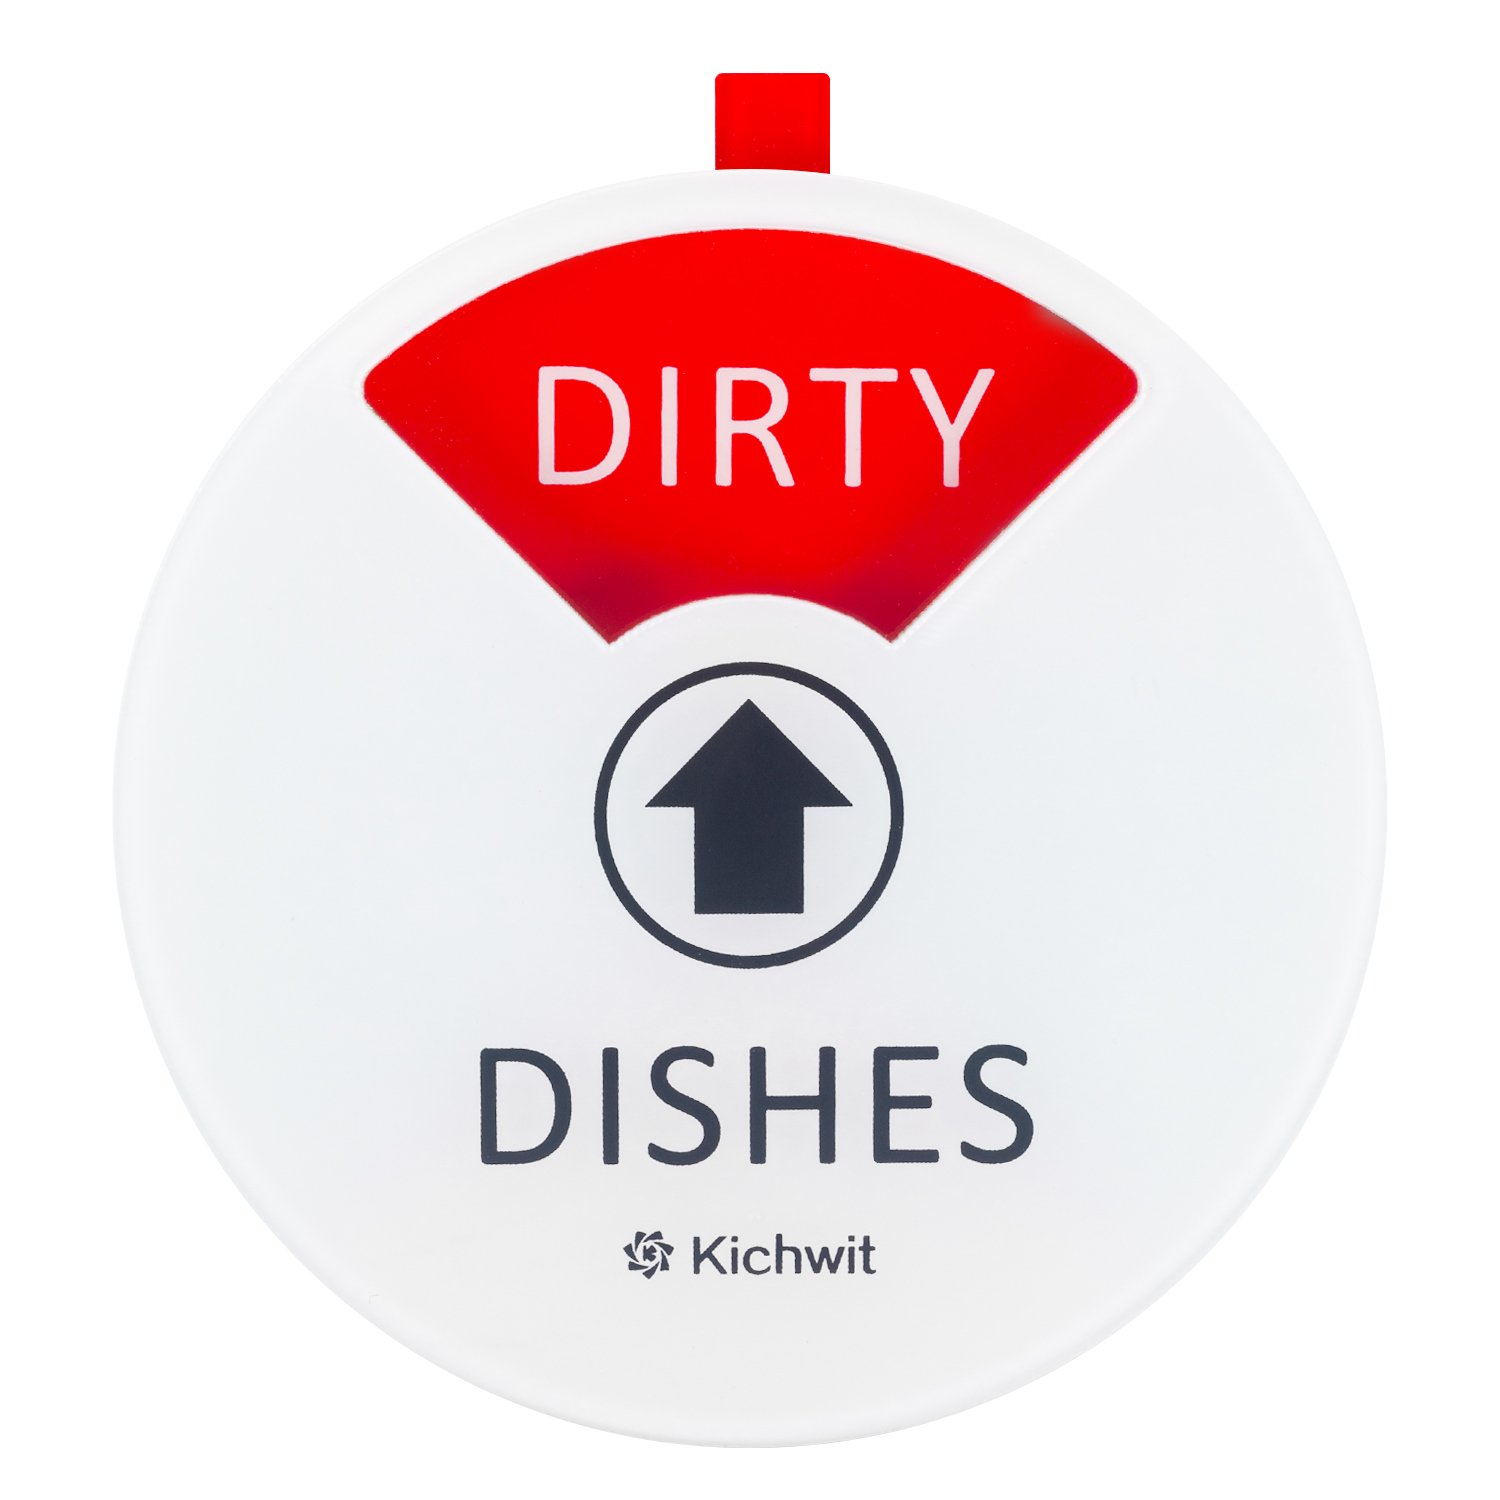 Kichwit Clean Dirty Dishwasher Magnet, Dishwasher Clean Dirty Sign, Works on All Dishwashers, Non-Scratch Strong Magnetic Backing, 4 Inch Diameter (White)